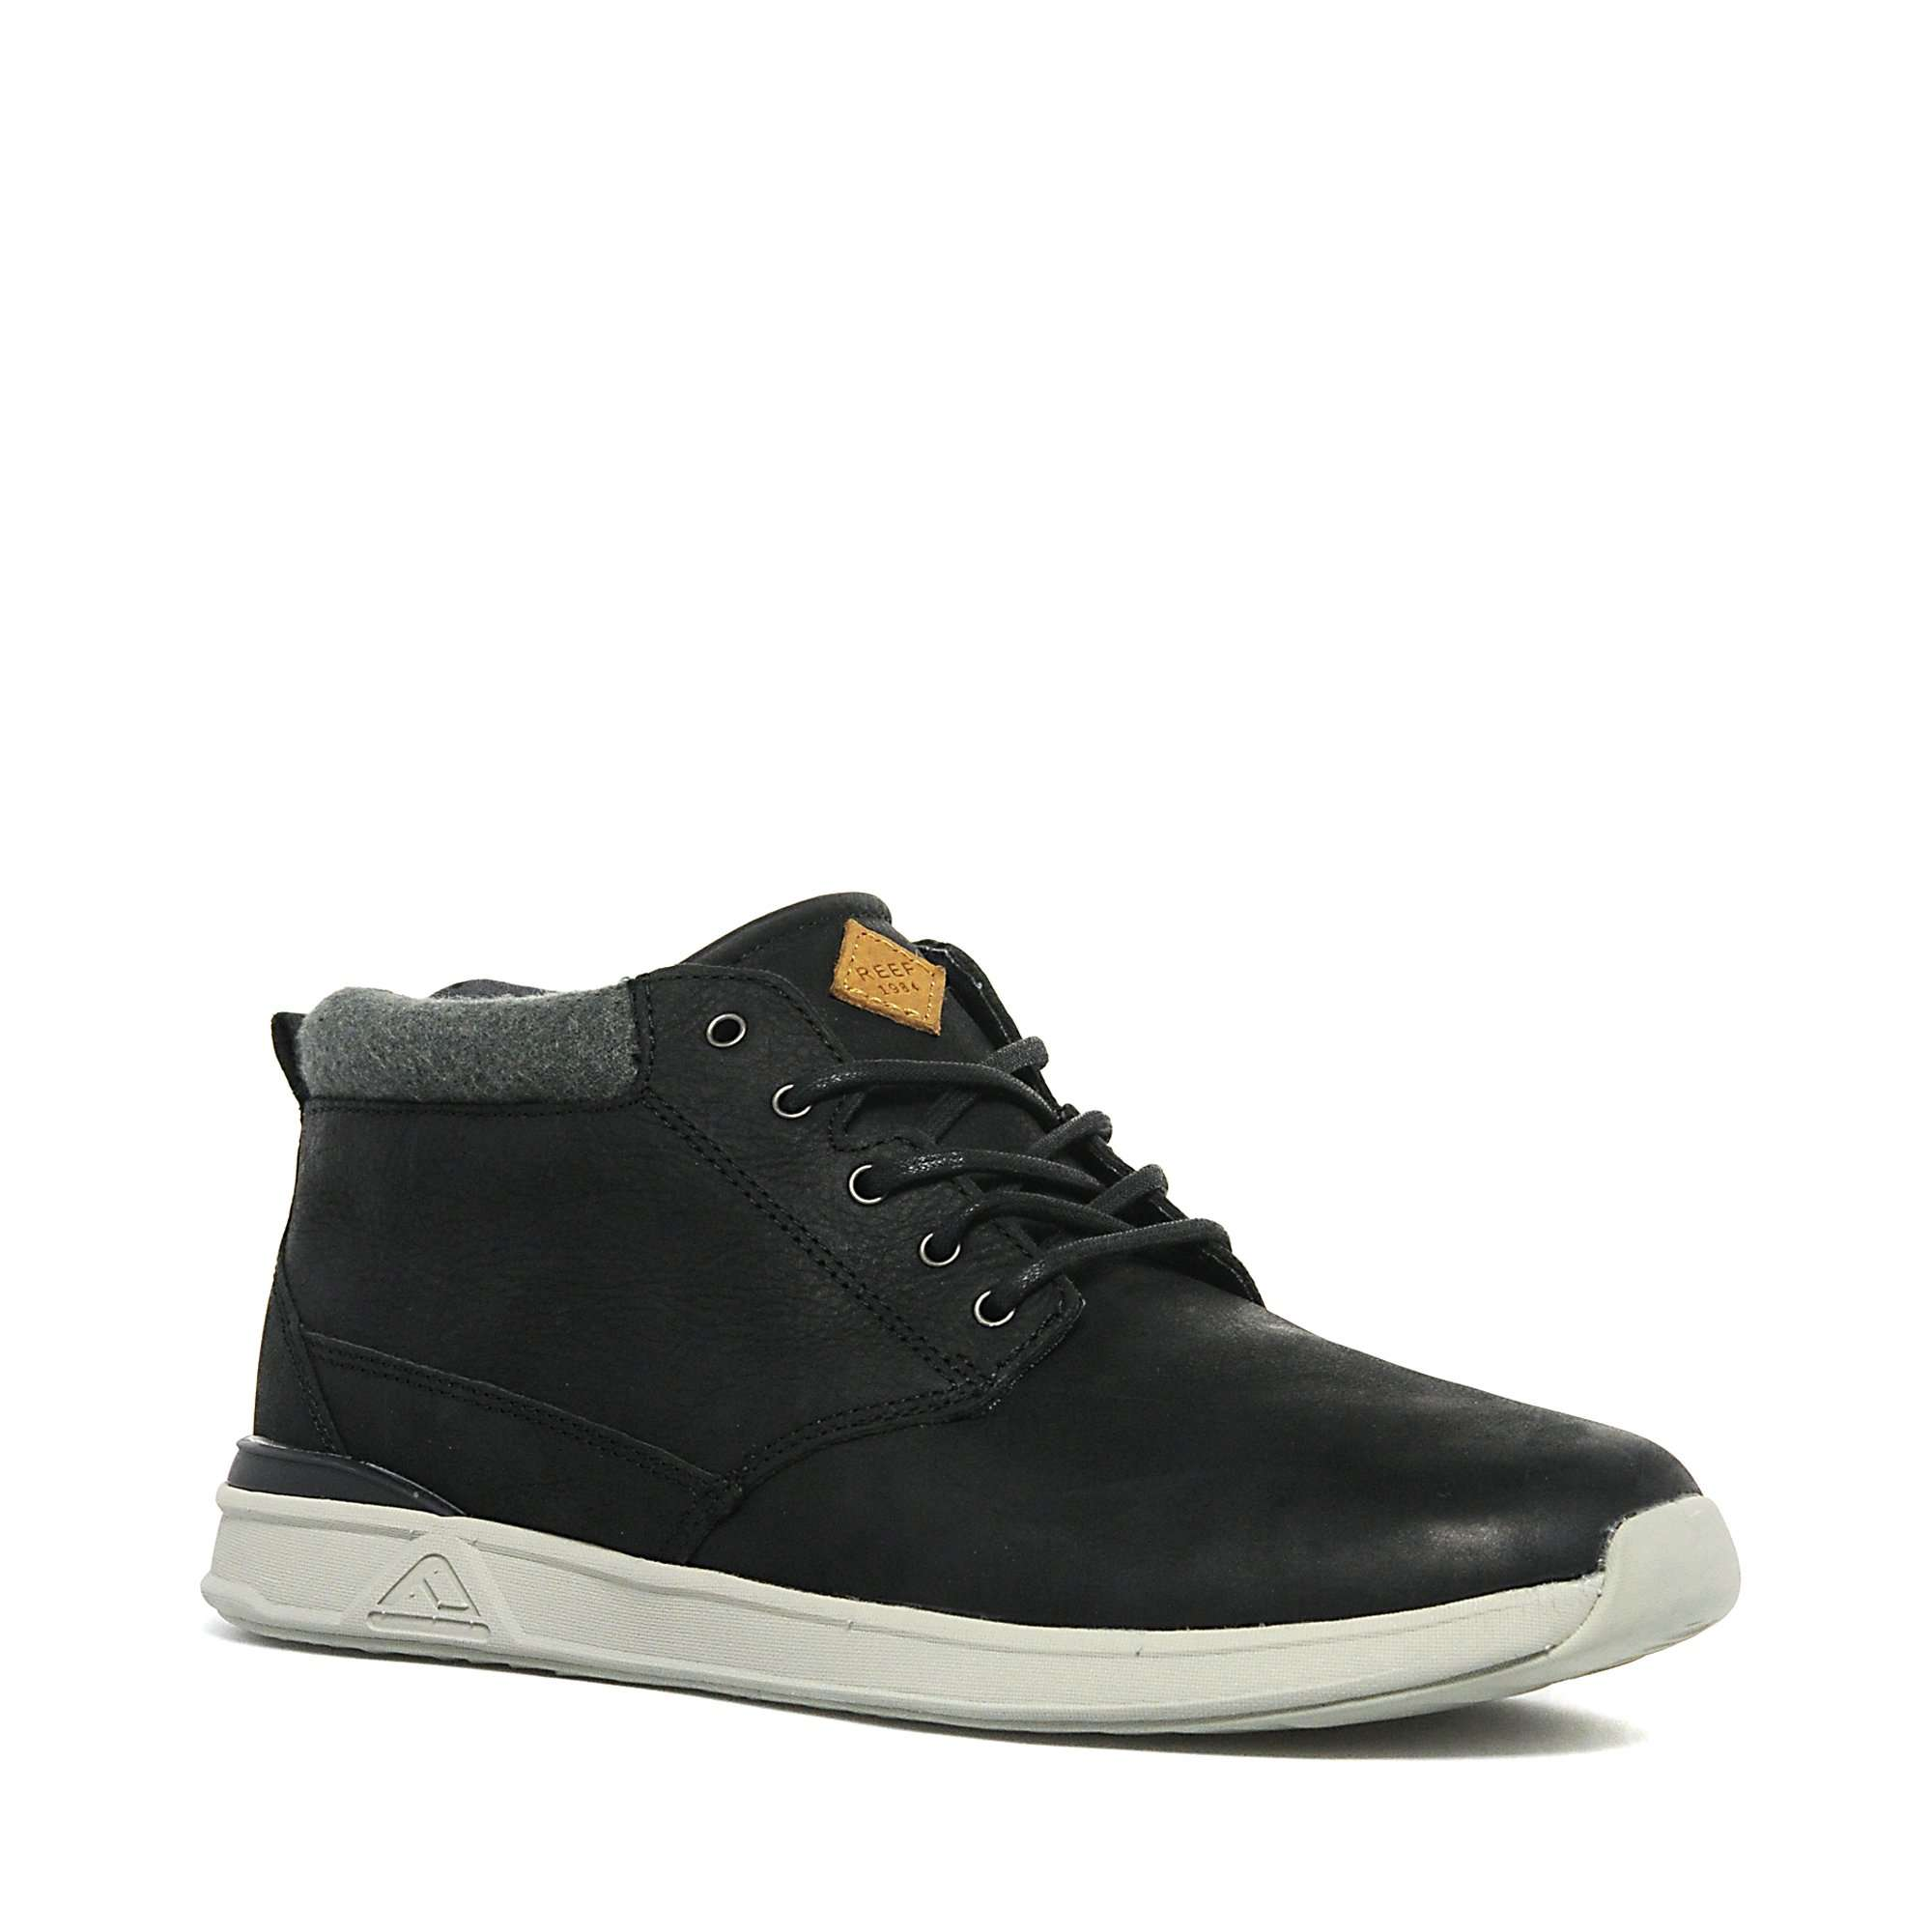 REEF Men's Rover Casual Mid Shoe